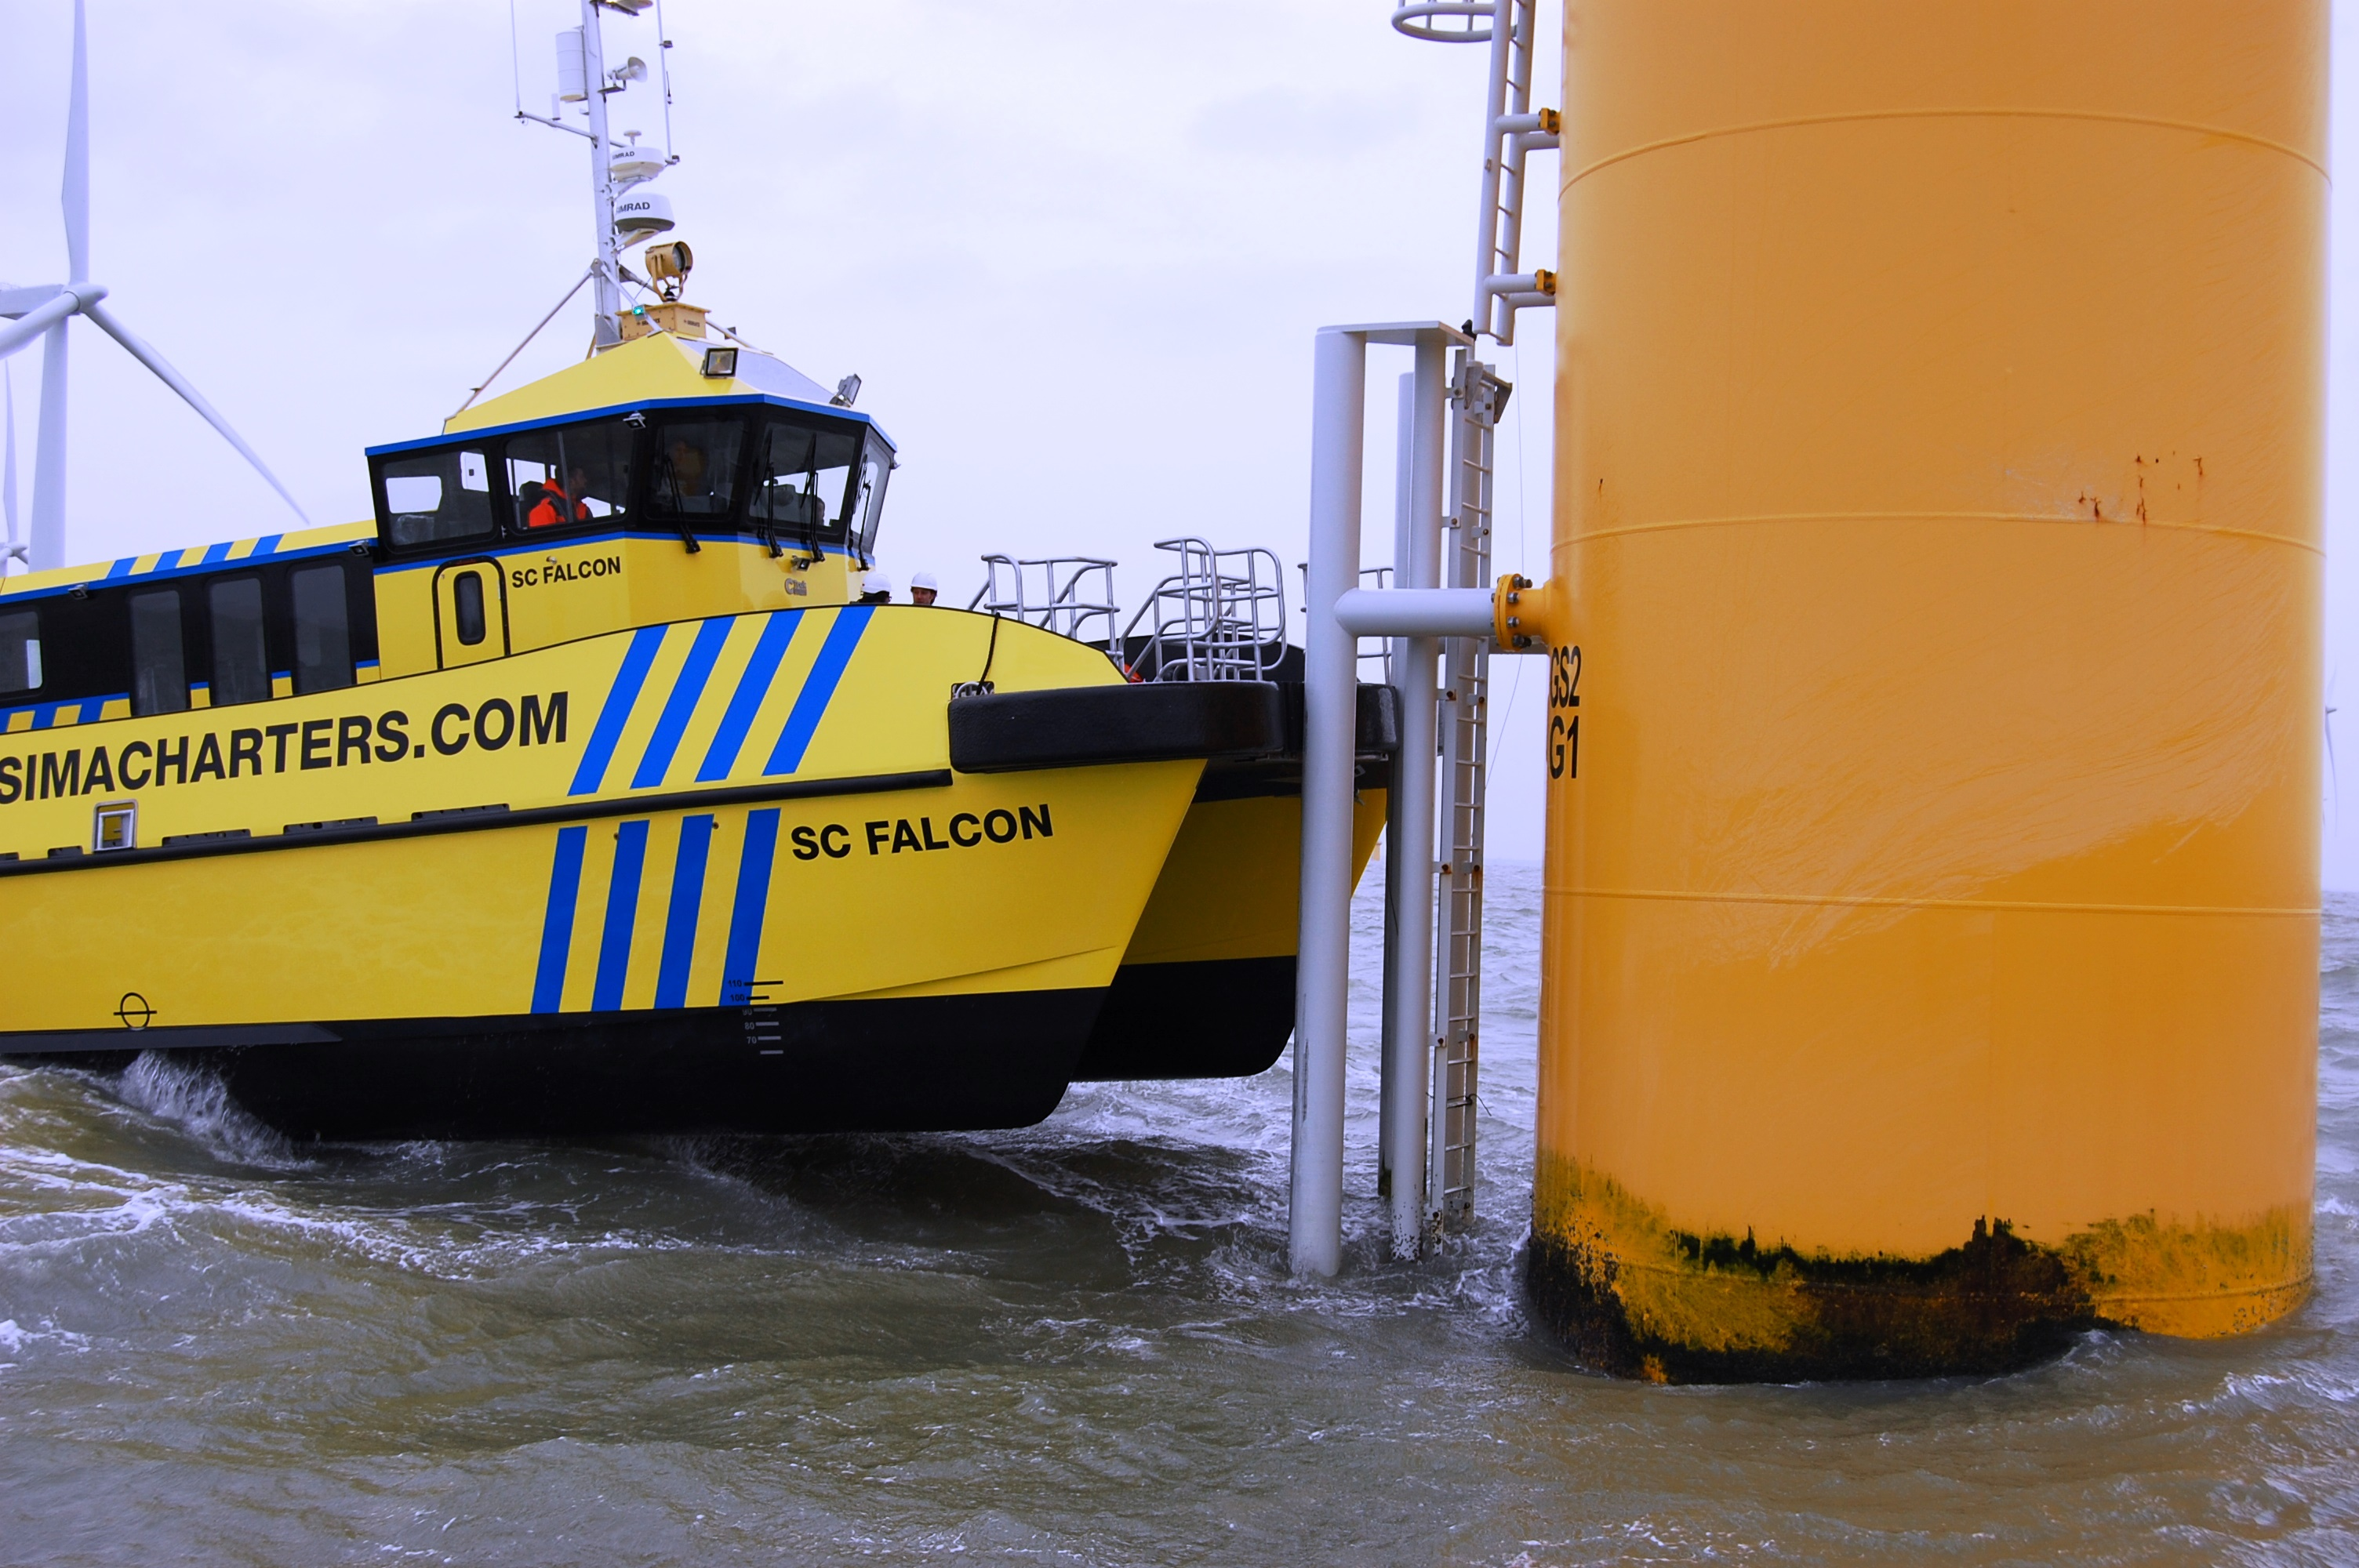 Sea trials for the striking blue and yellow-liveried cat, the first ...